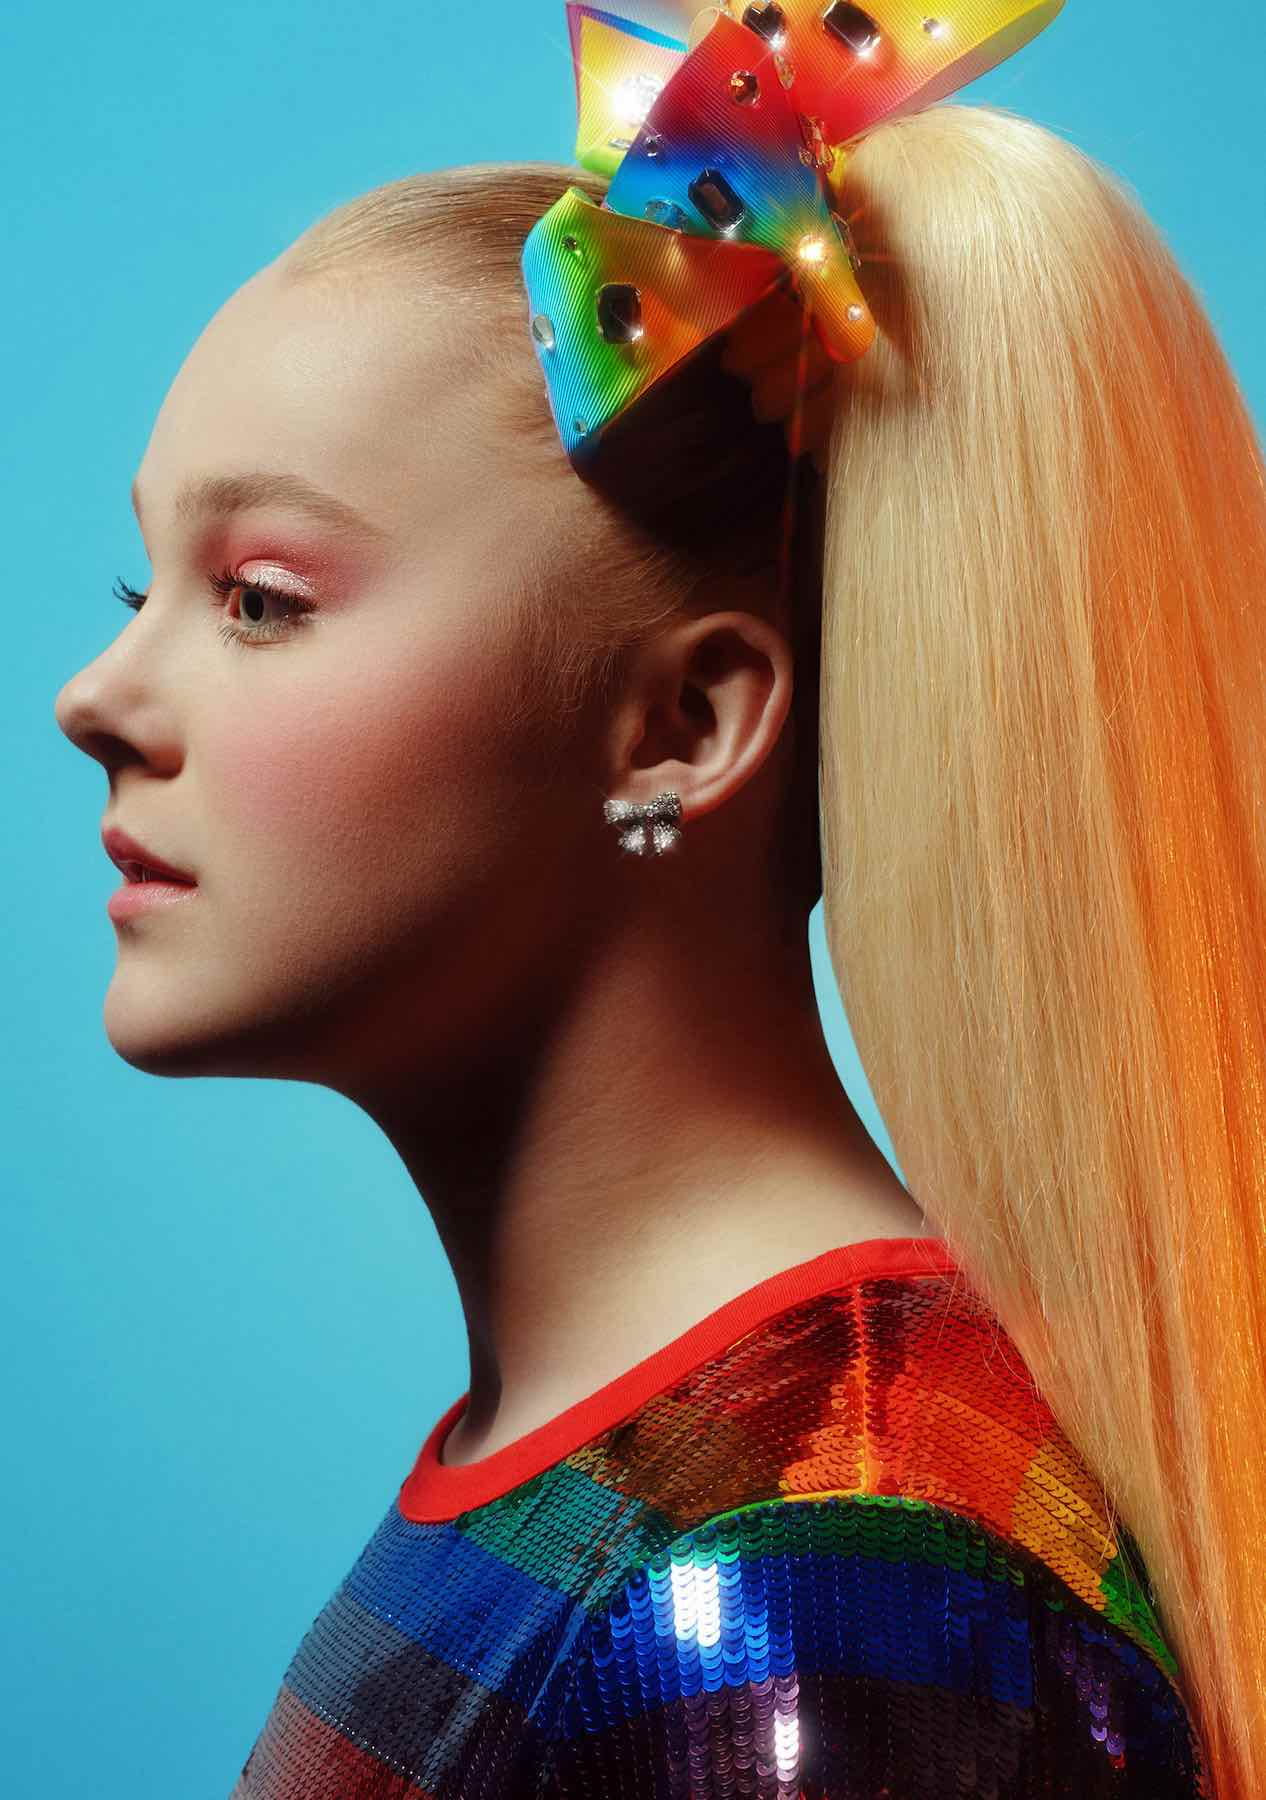 Former 'Dance Mom' star JoJo Siwa has recently shared on TikTok she's gay, a proud member of the LGBTQ community. Let's dive in.